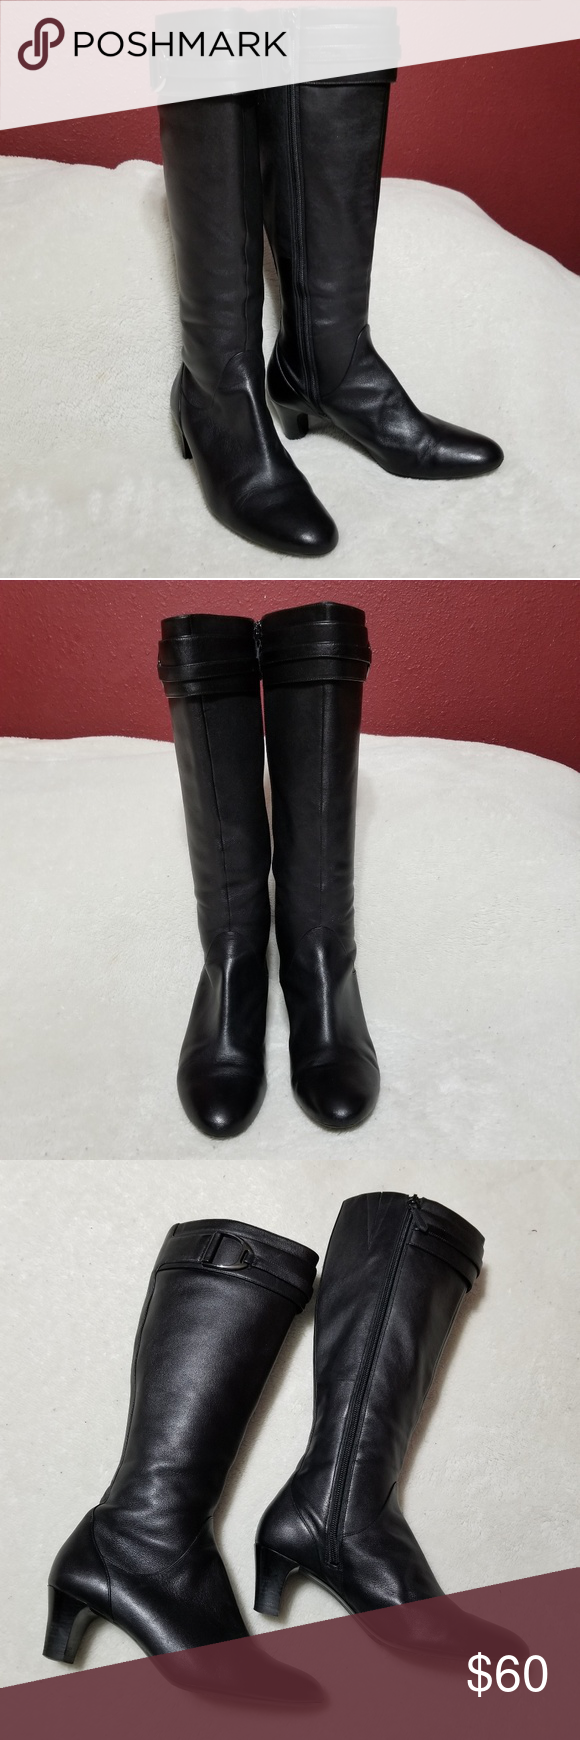 9d7a19545a9 Cole Haan Knee High Boots Cole Haan Knee High Boots Faux Leather Very  Gently Loved Side Zippers 2in Heel 17in top to bottom Cole Haan Shoes  Winter   Rain ...